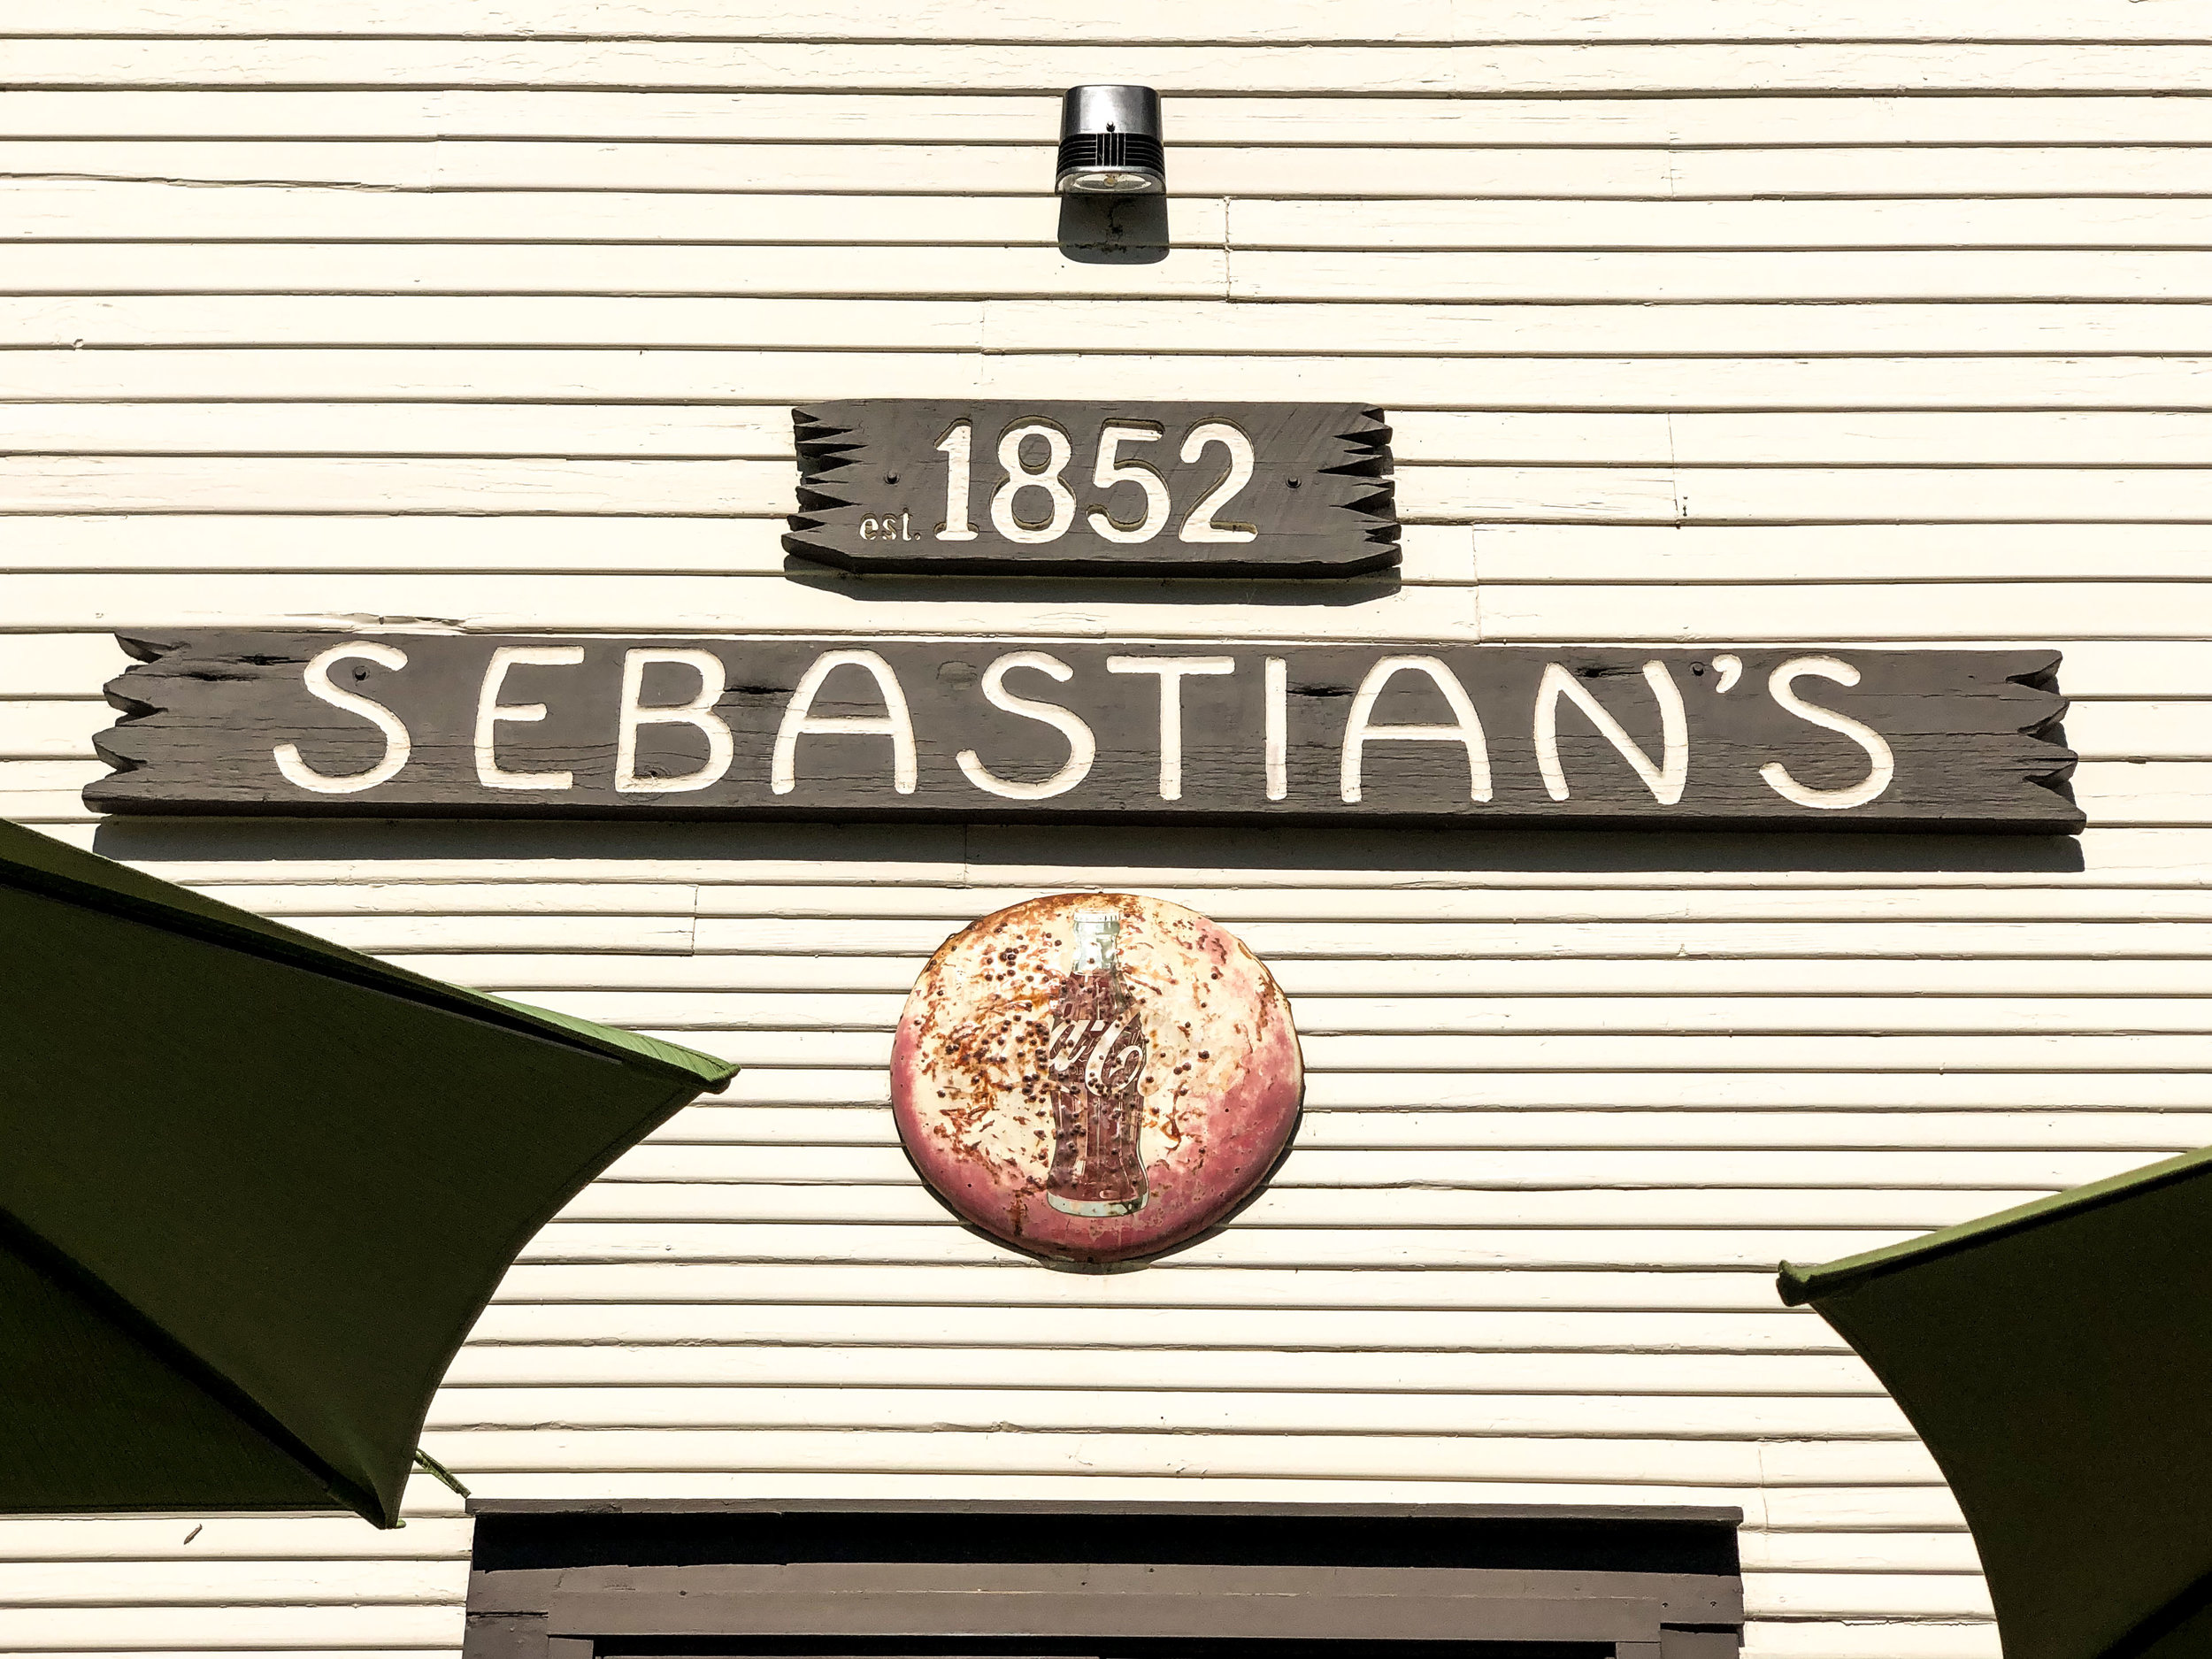 We had lunch at Sebastian's.